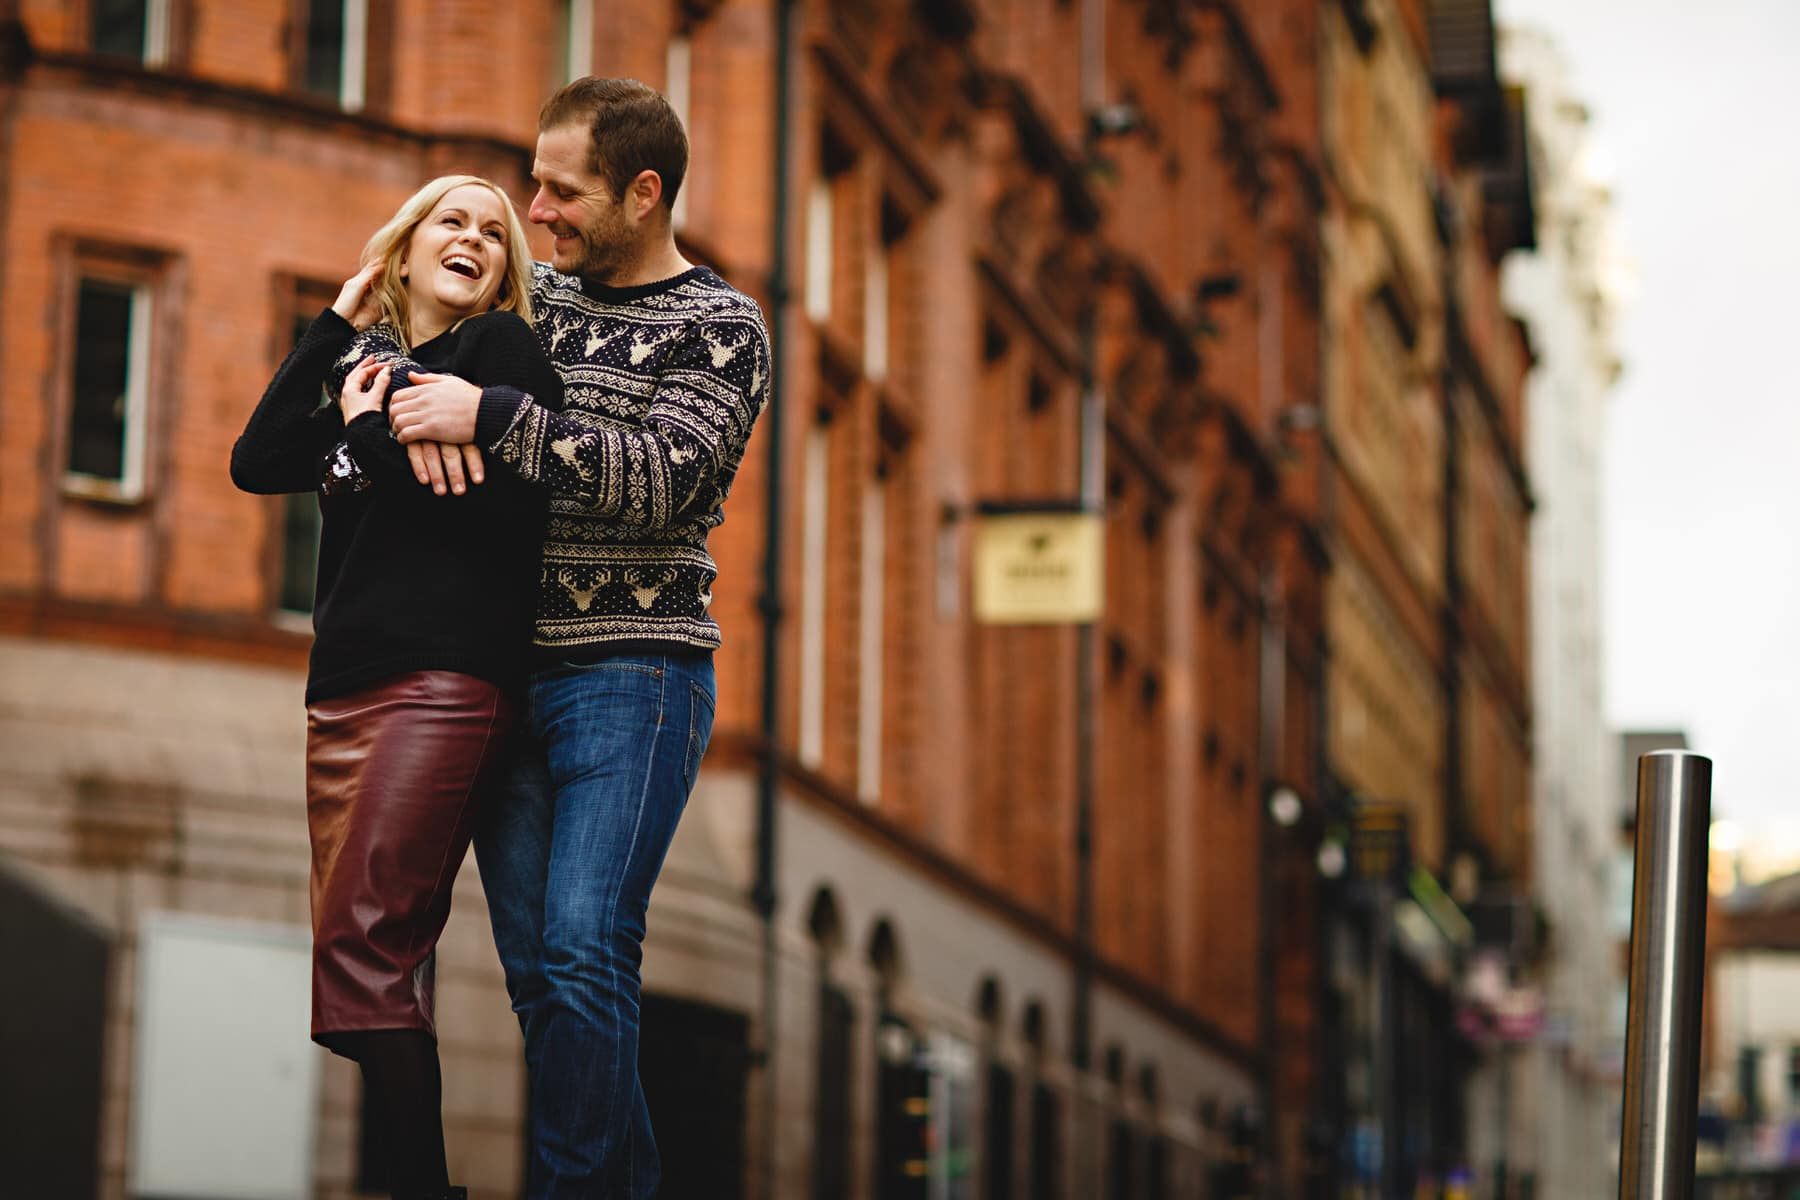 couple hugging and laughing against red brick buildings in the city